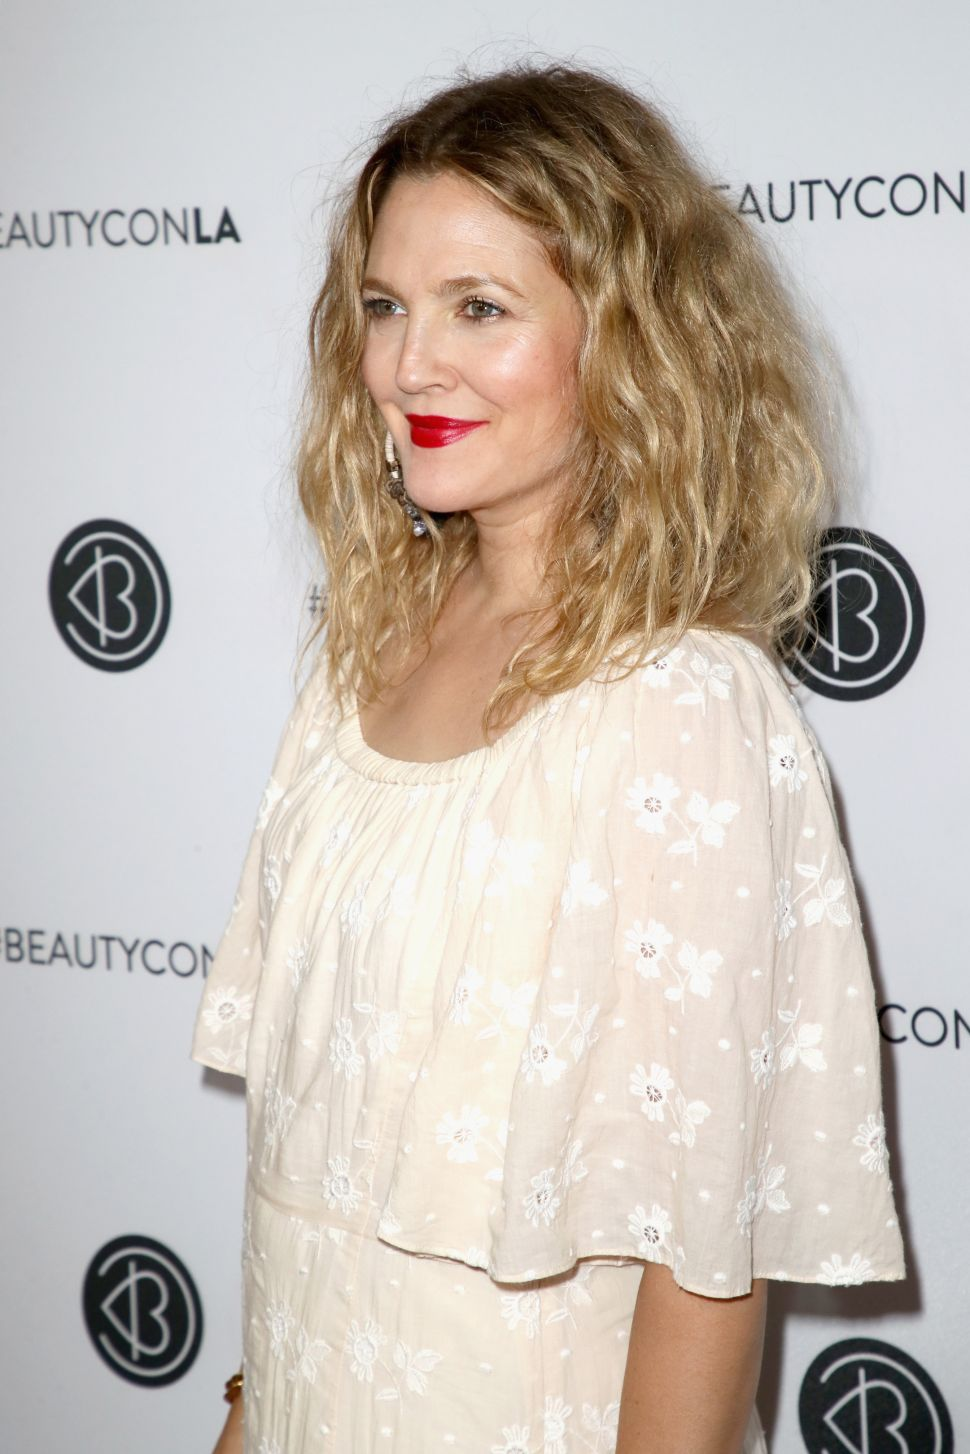 Drew Barrymore's Walmart Home Line Was Inspired by Lindsay Lohan's Old Lunch Spot